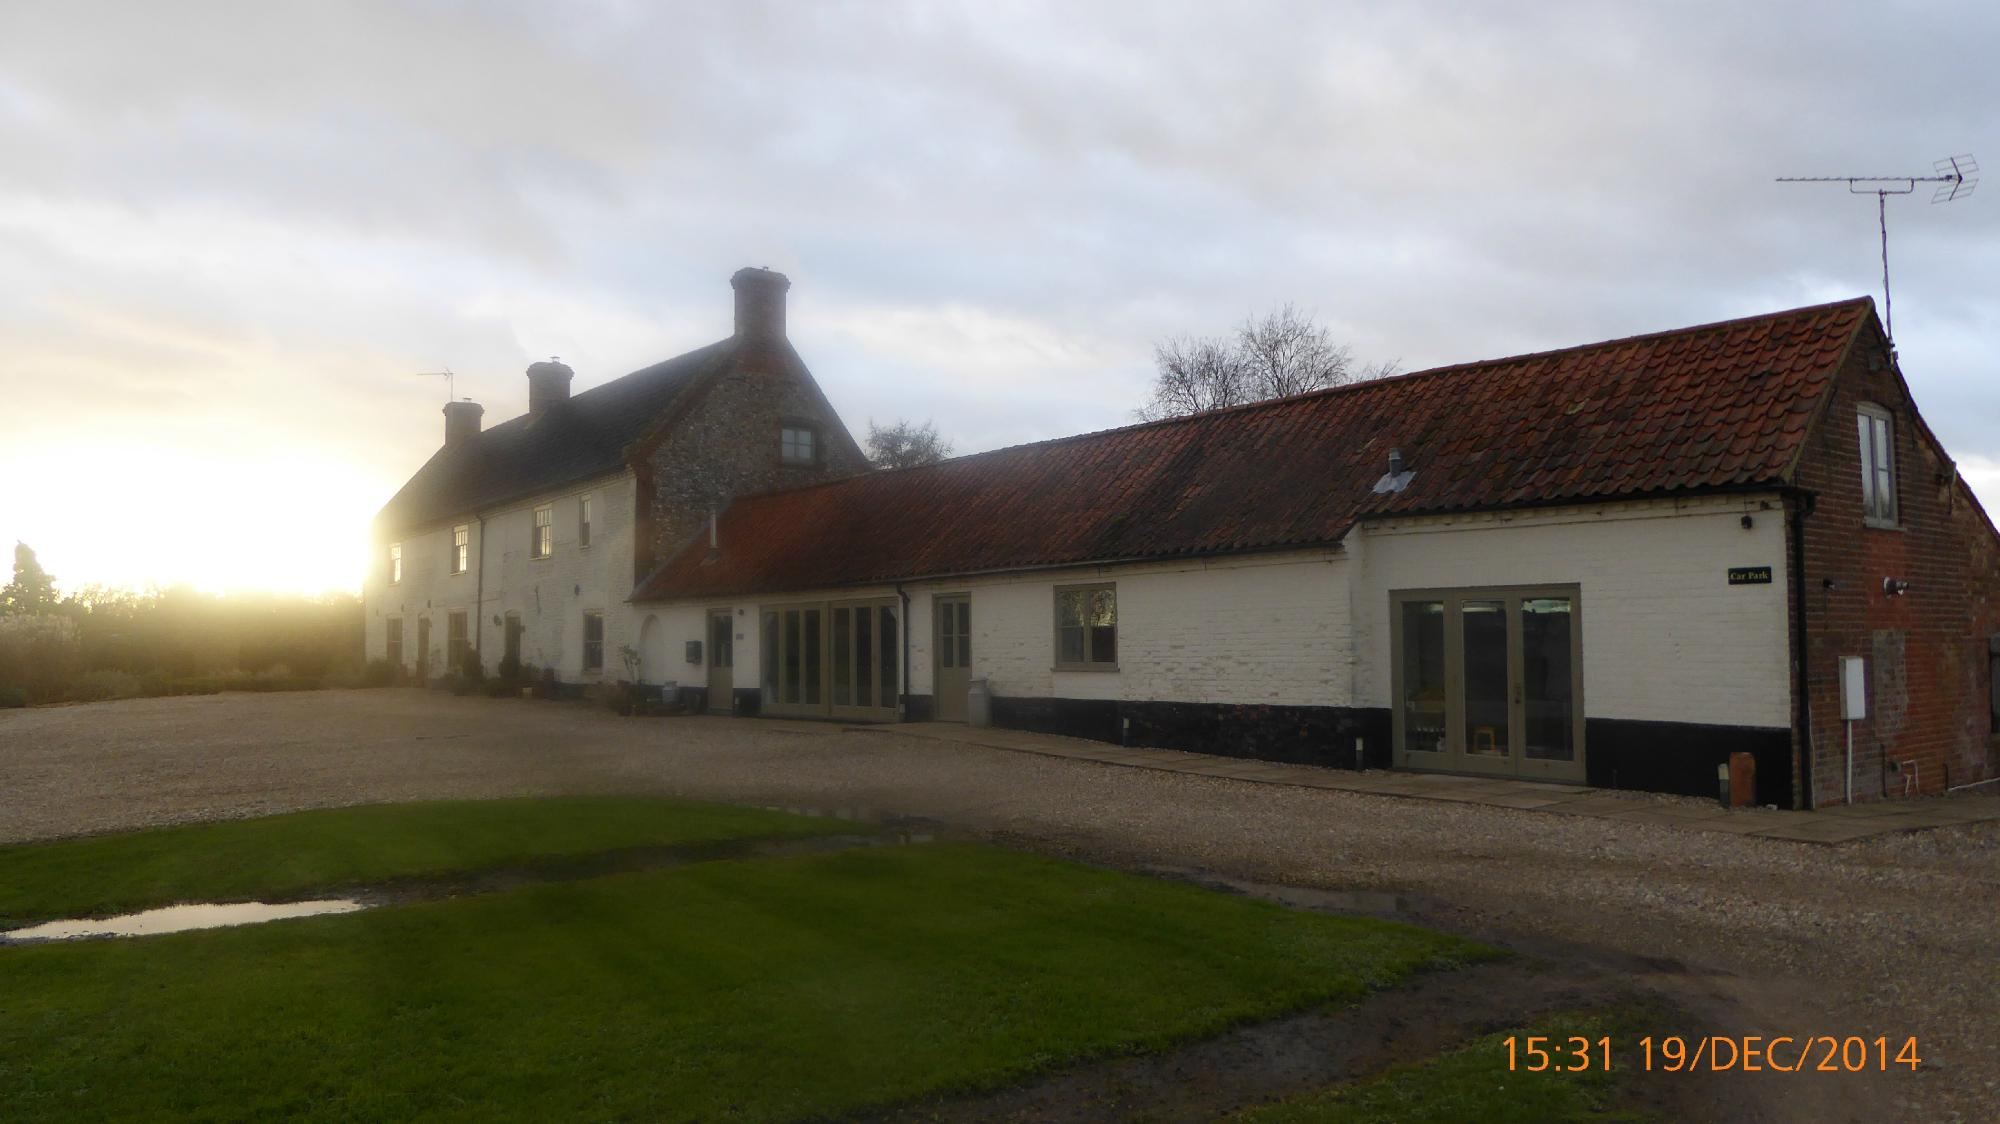 Jex Farmhouse